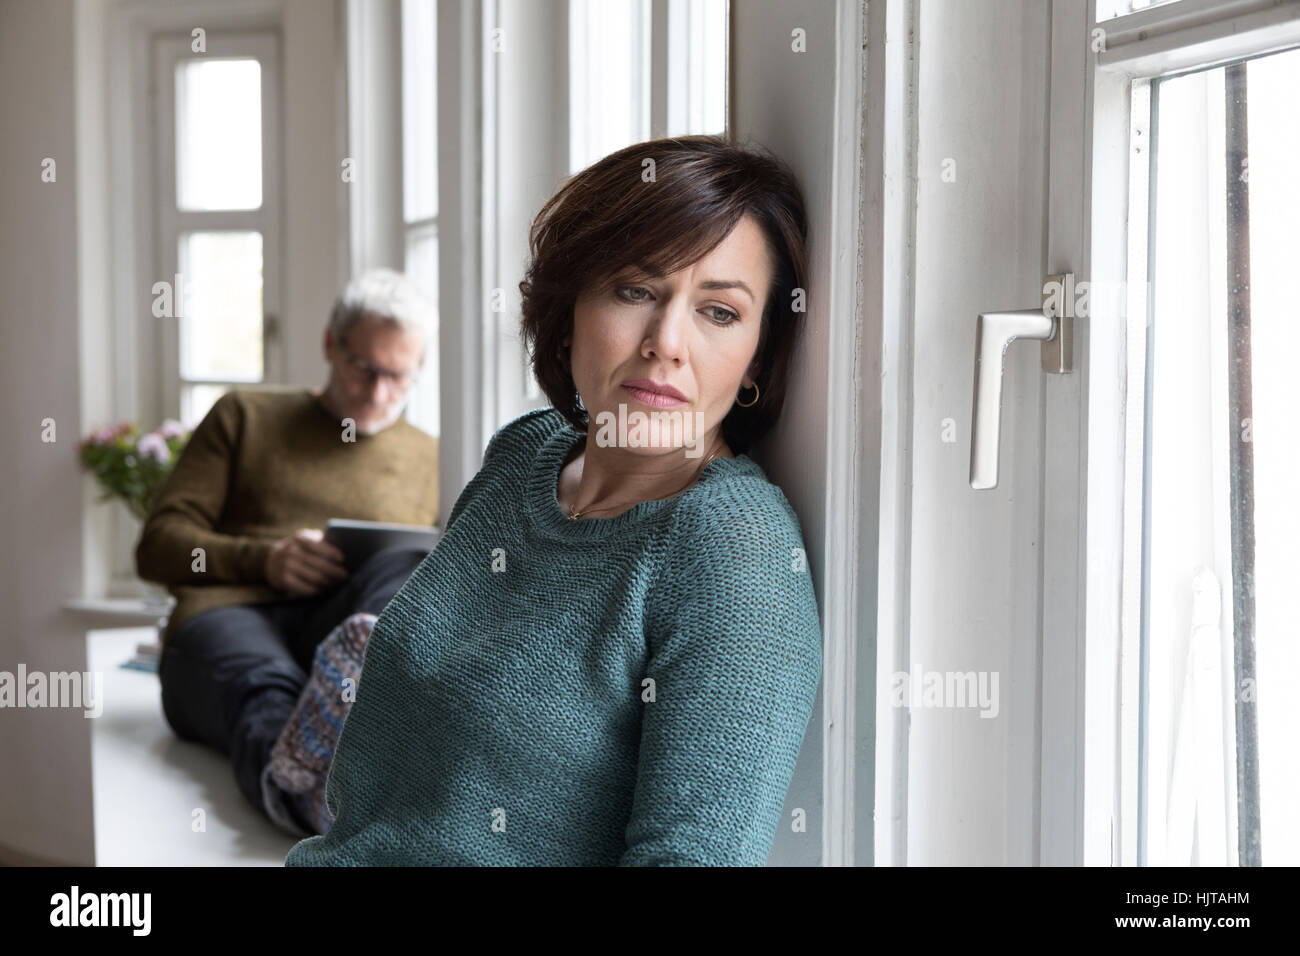 Disappointed woman with man in background - Stock Image